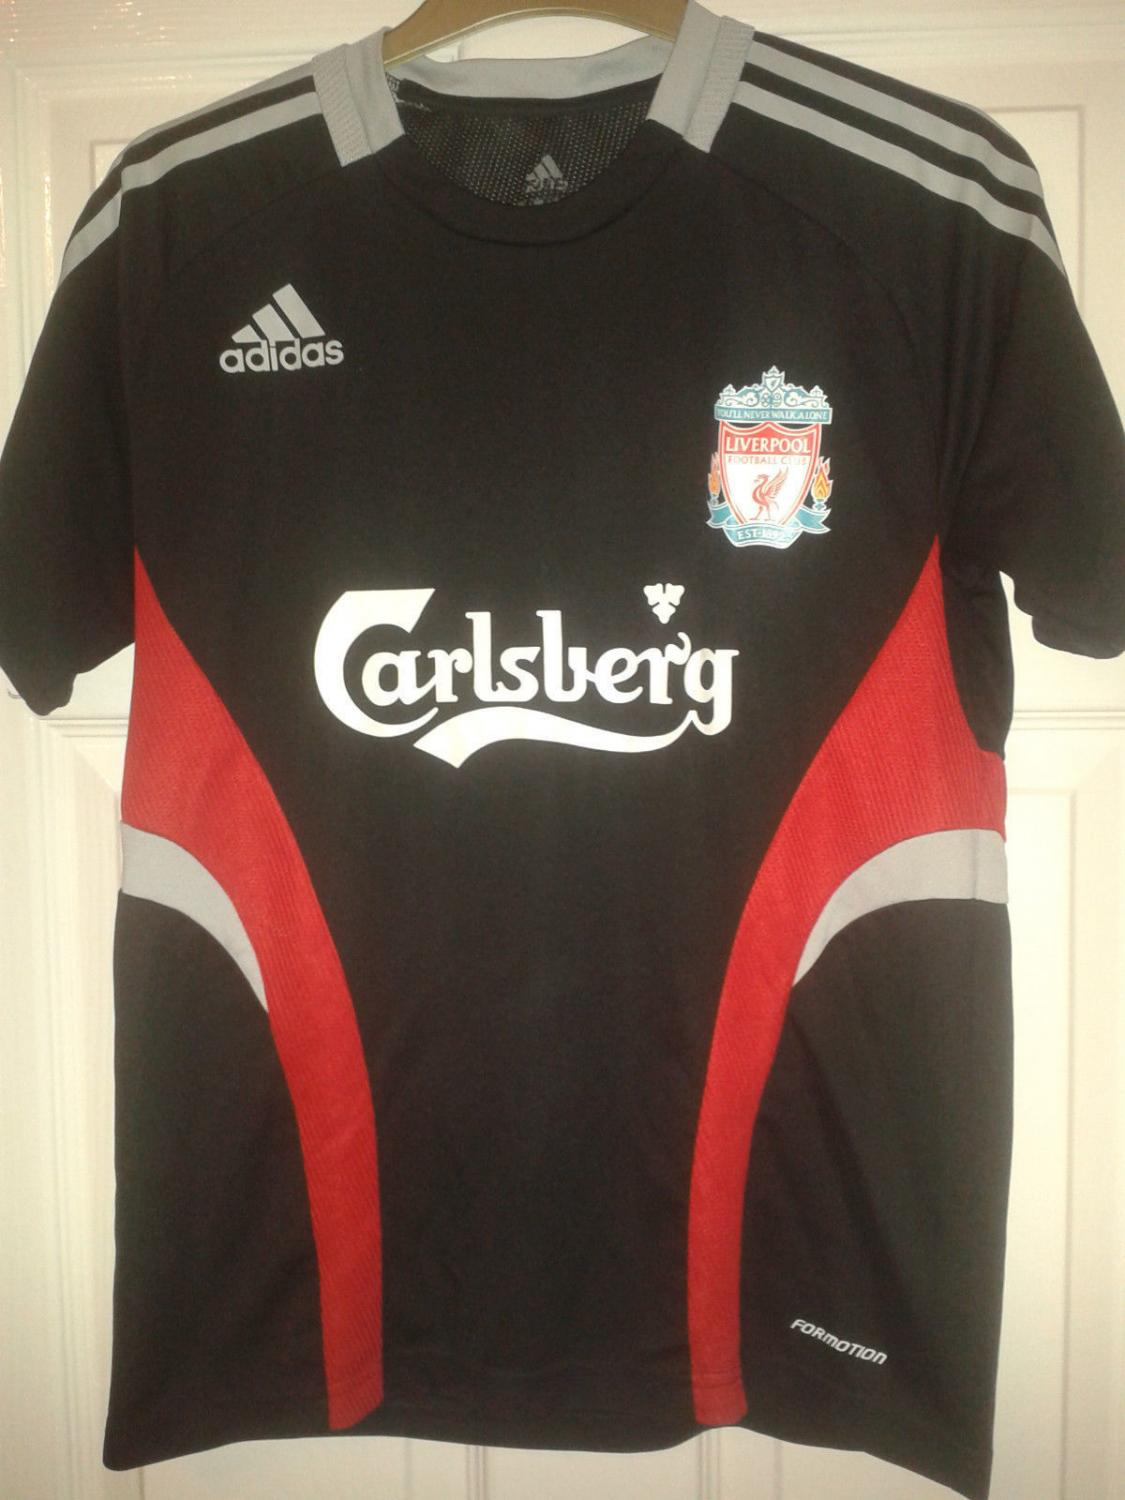 reputable site 5be58 a940b Liverpool Training/Leisure Maillot de foot 2006 - 2007.